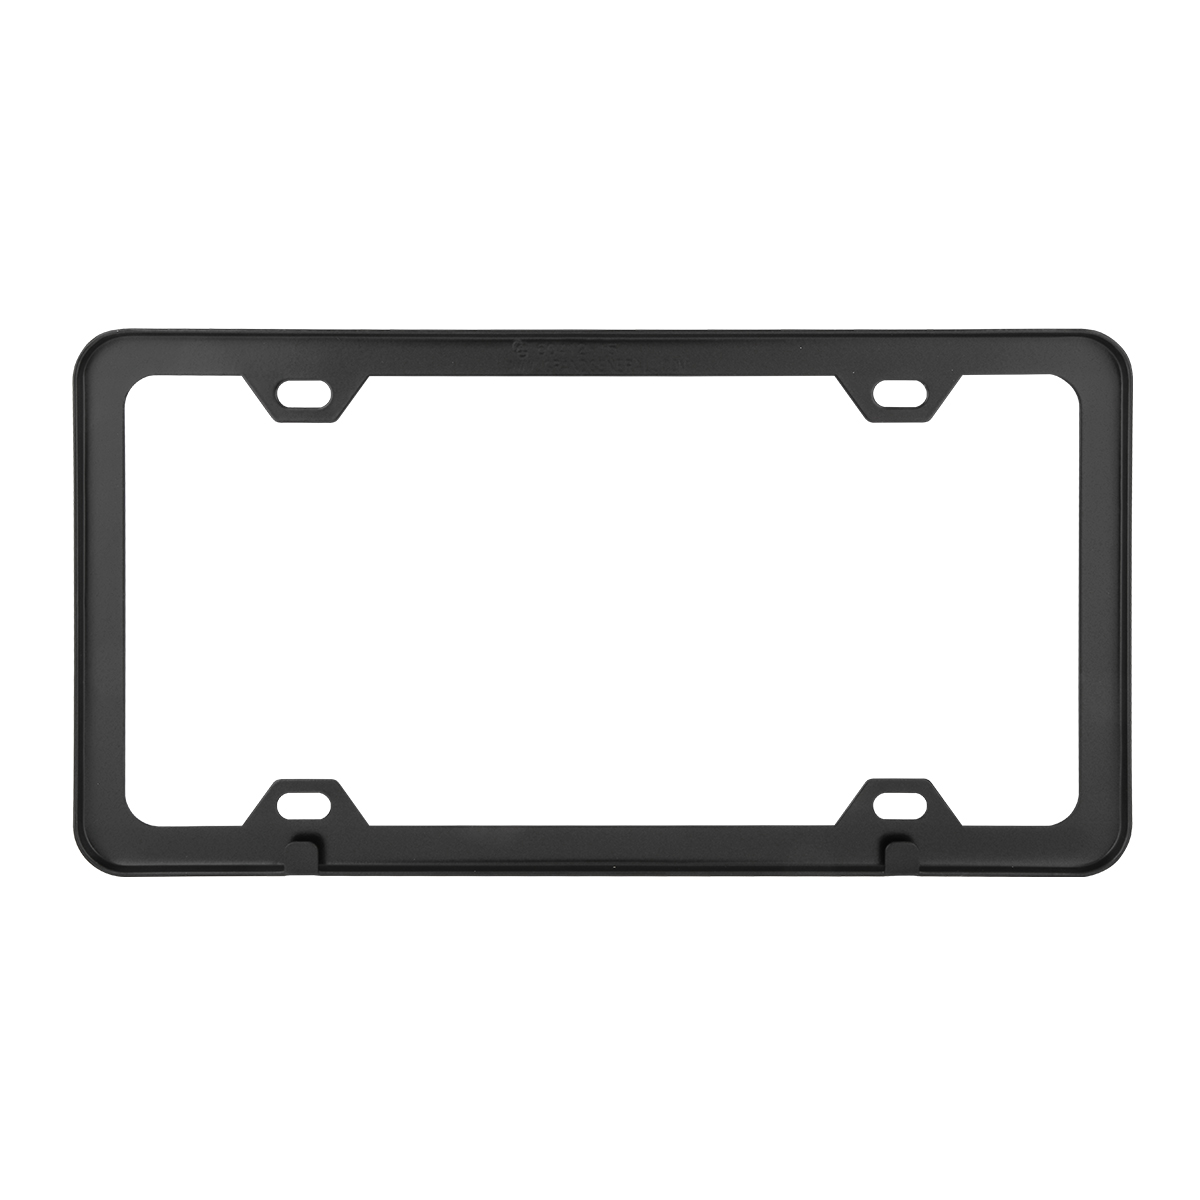 60414 Plain Matte Black 4 Hole License Plate Frame - Back View